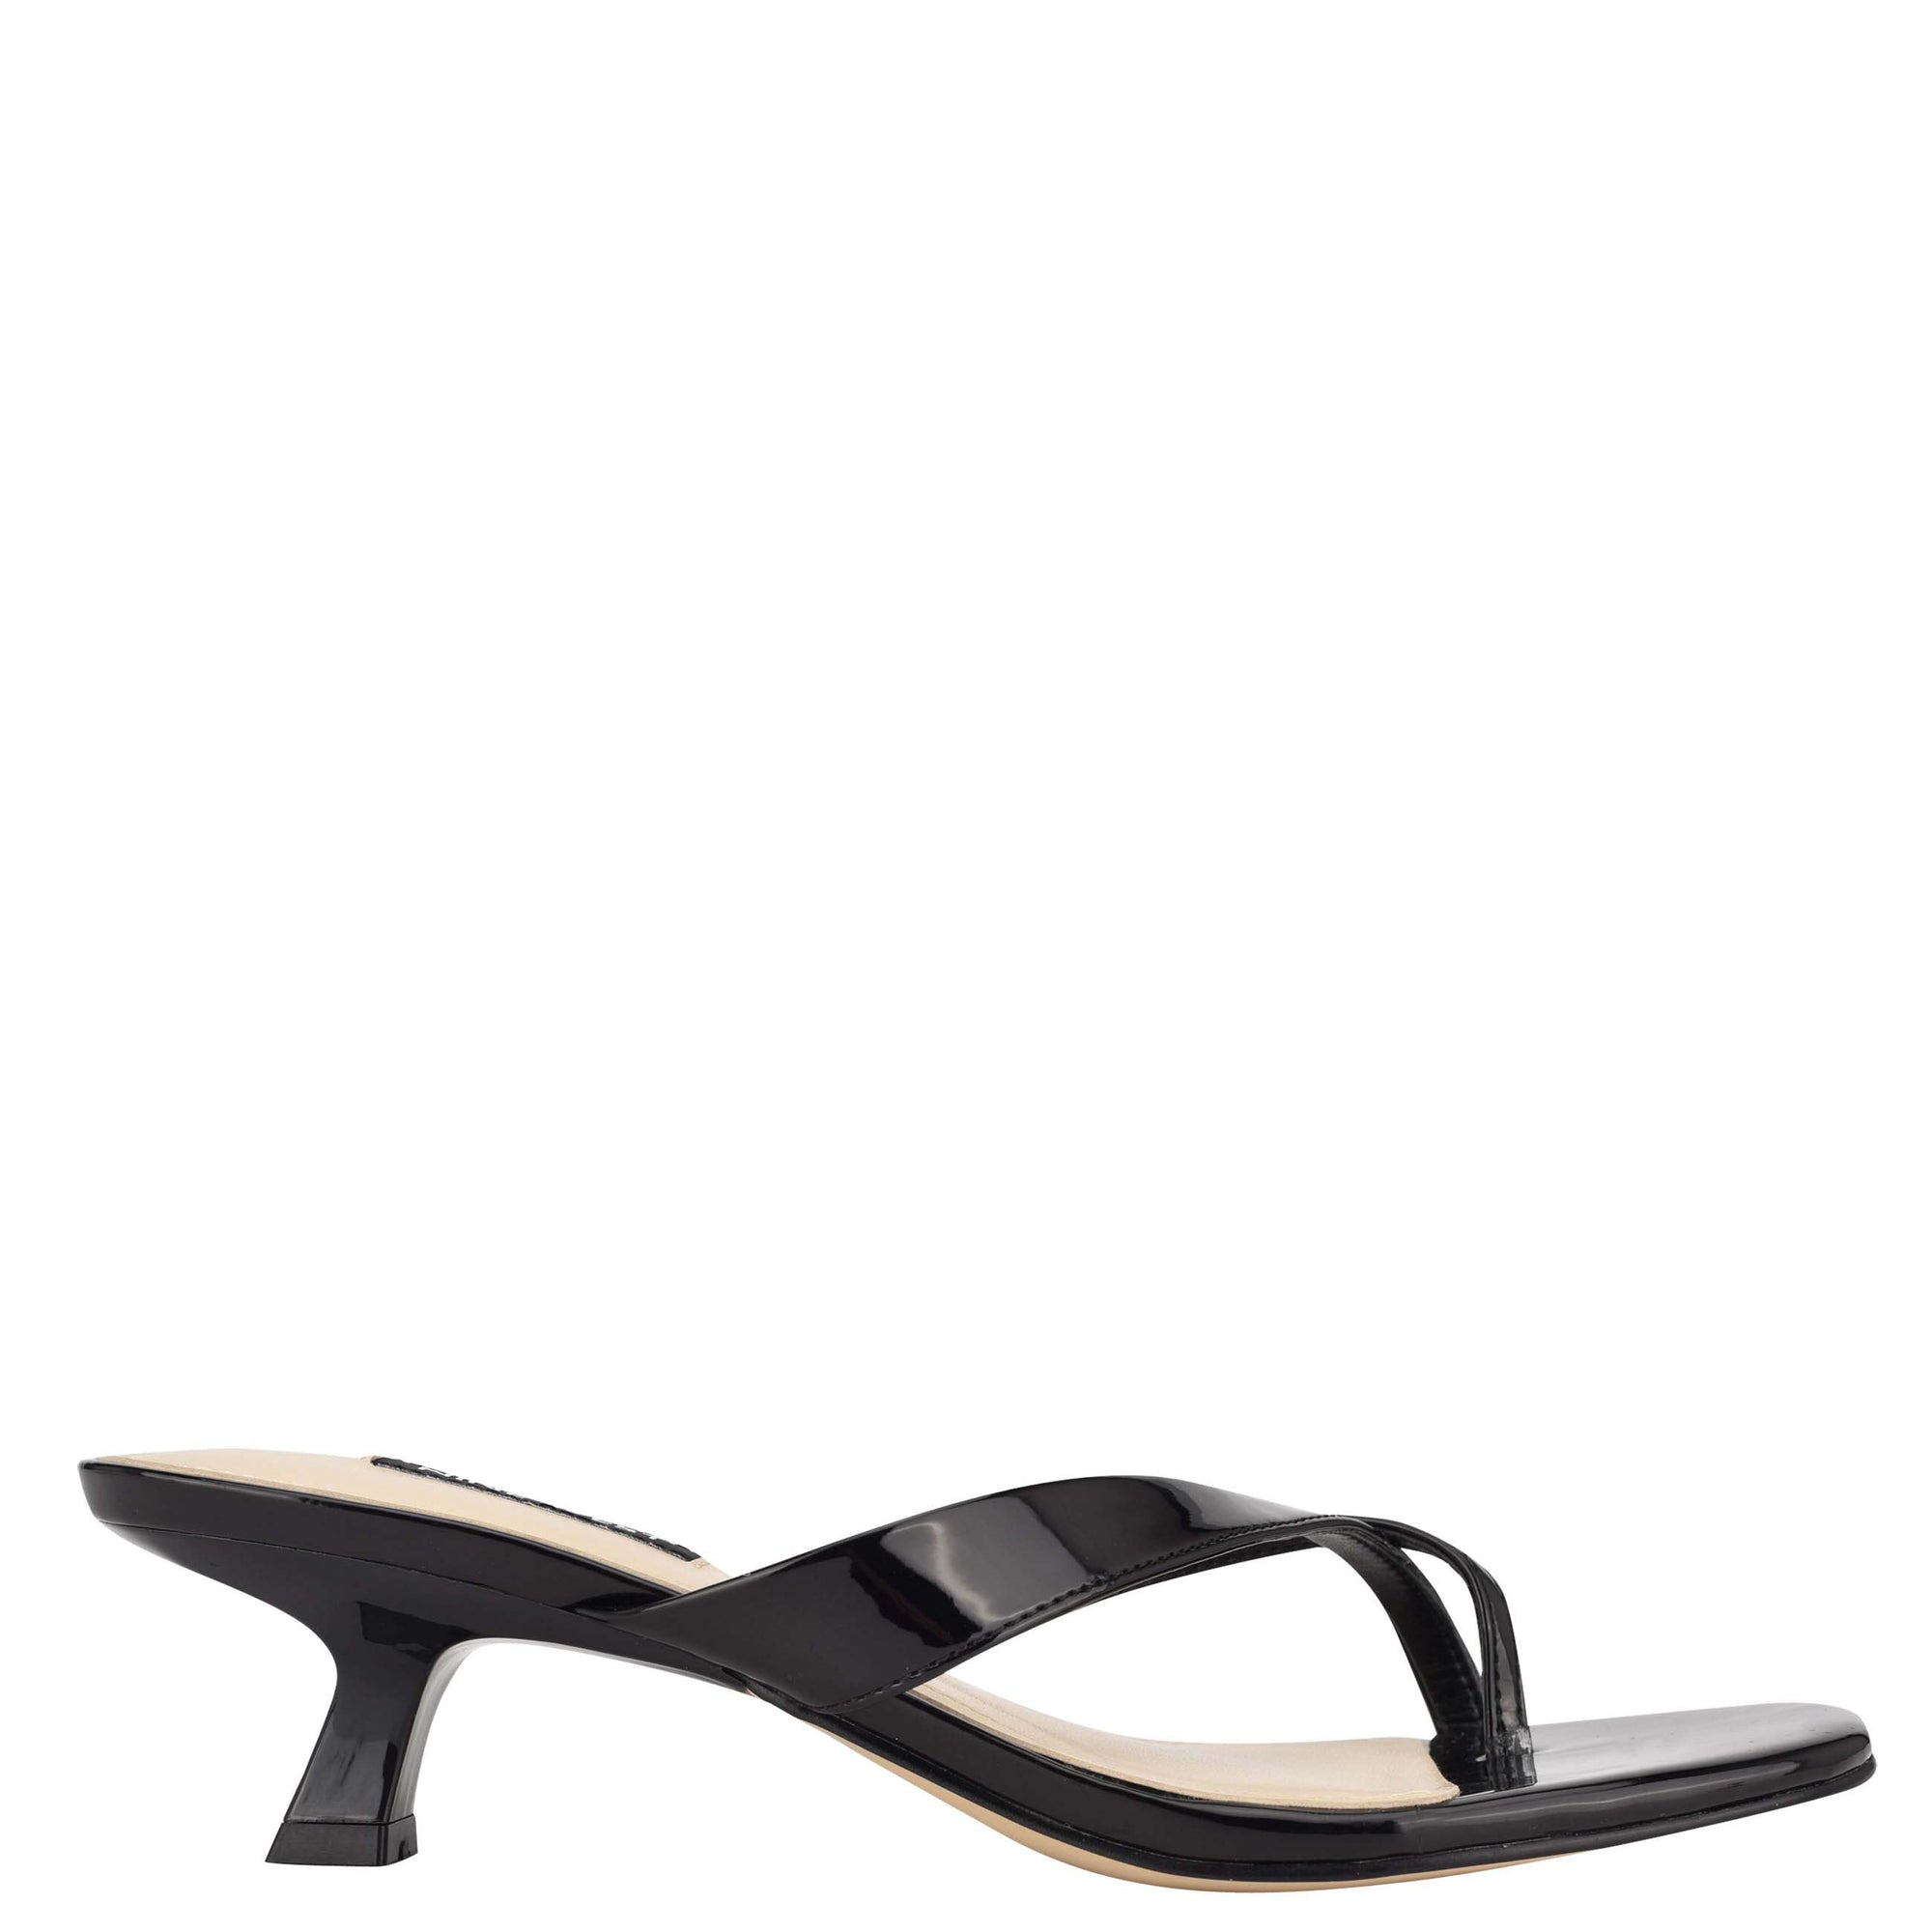 Marigol Heeled Thong Sandals